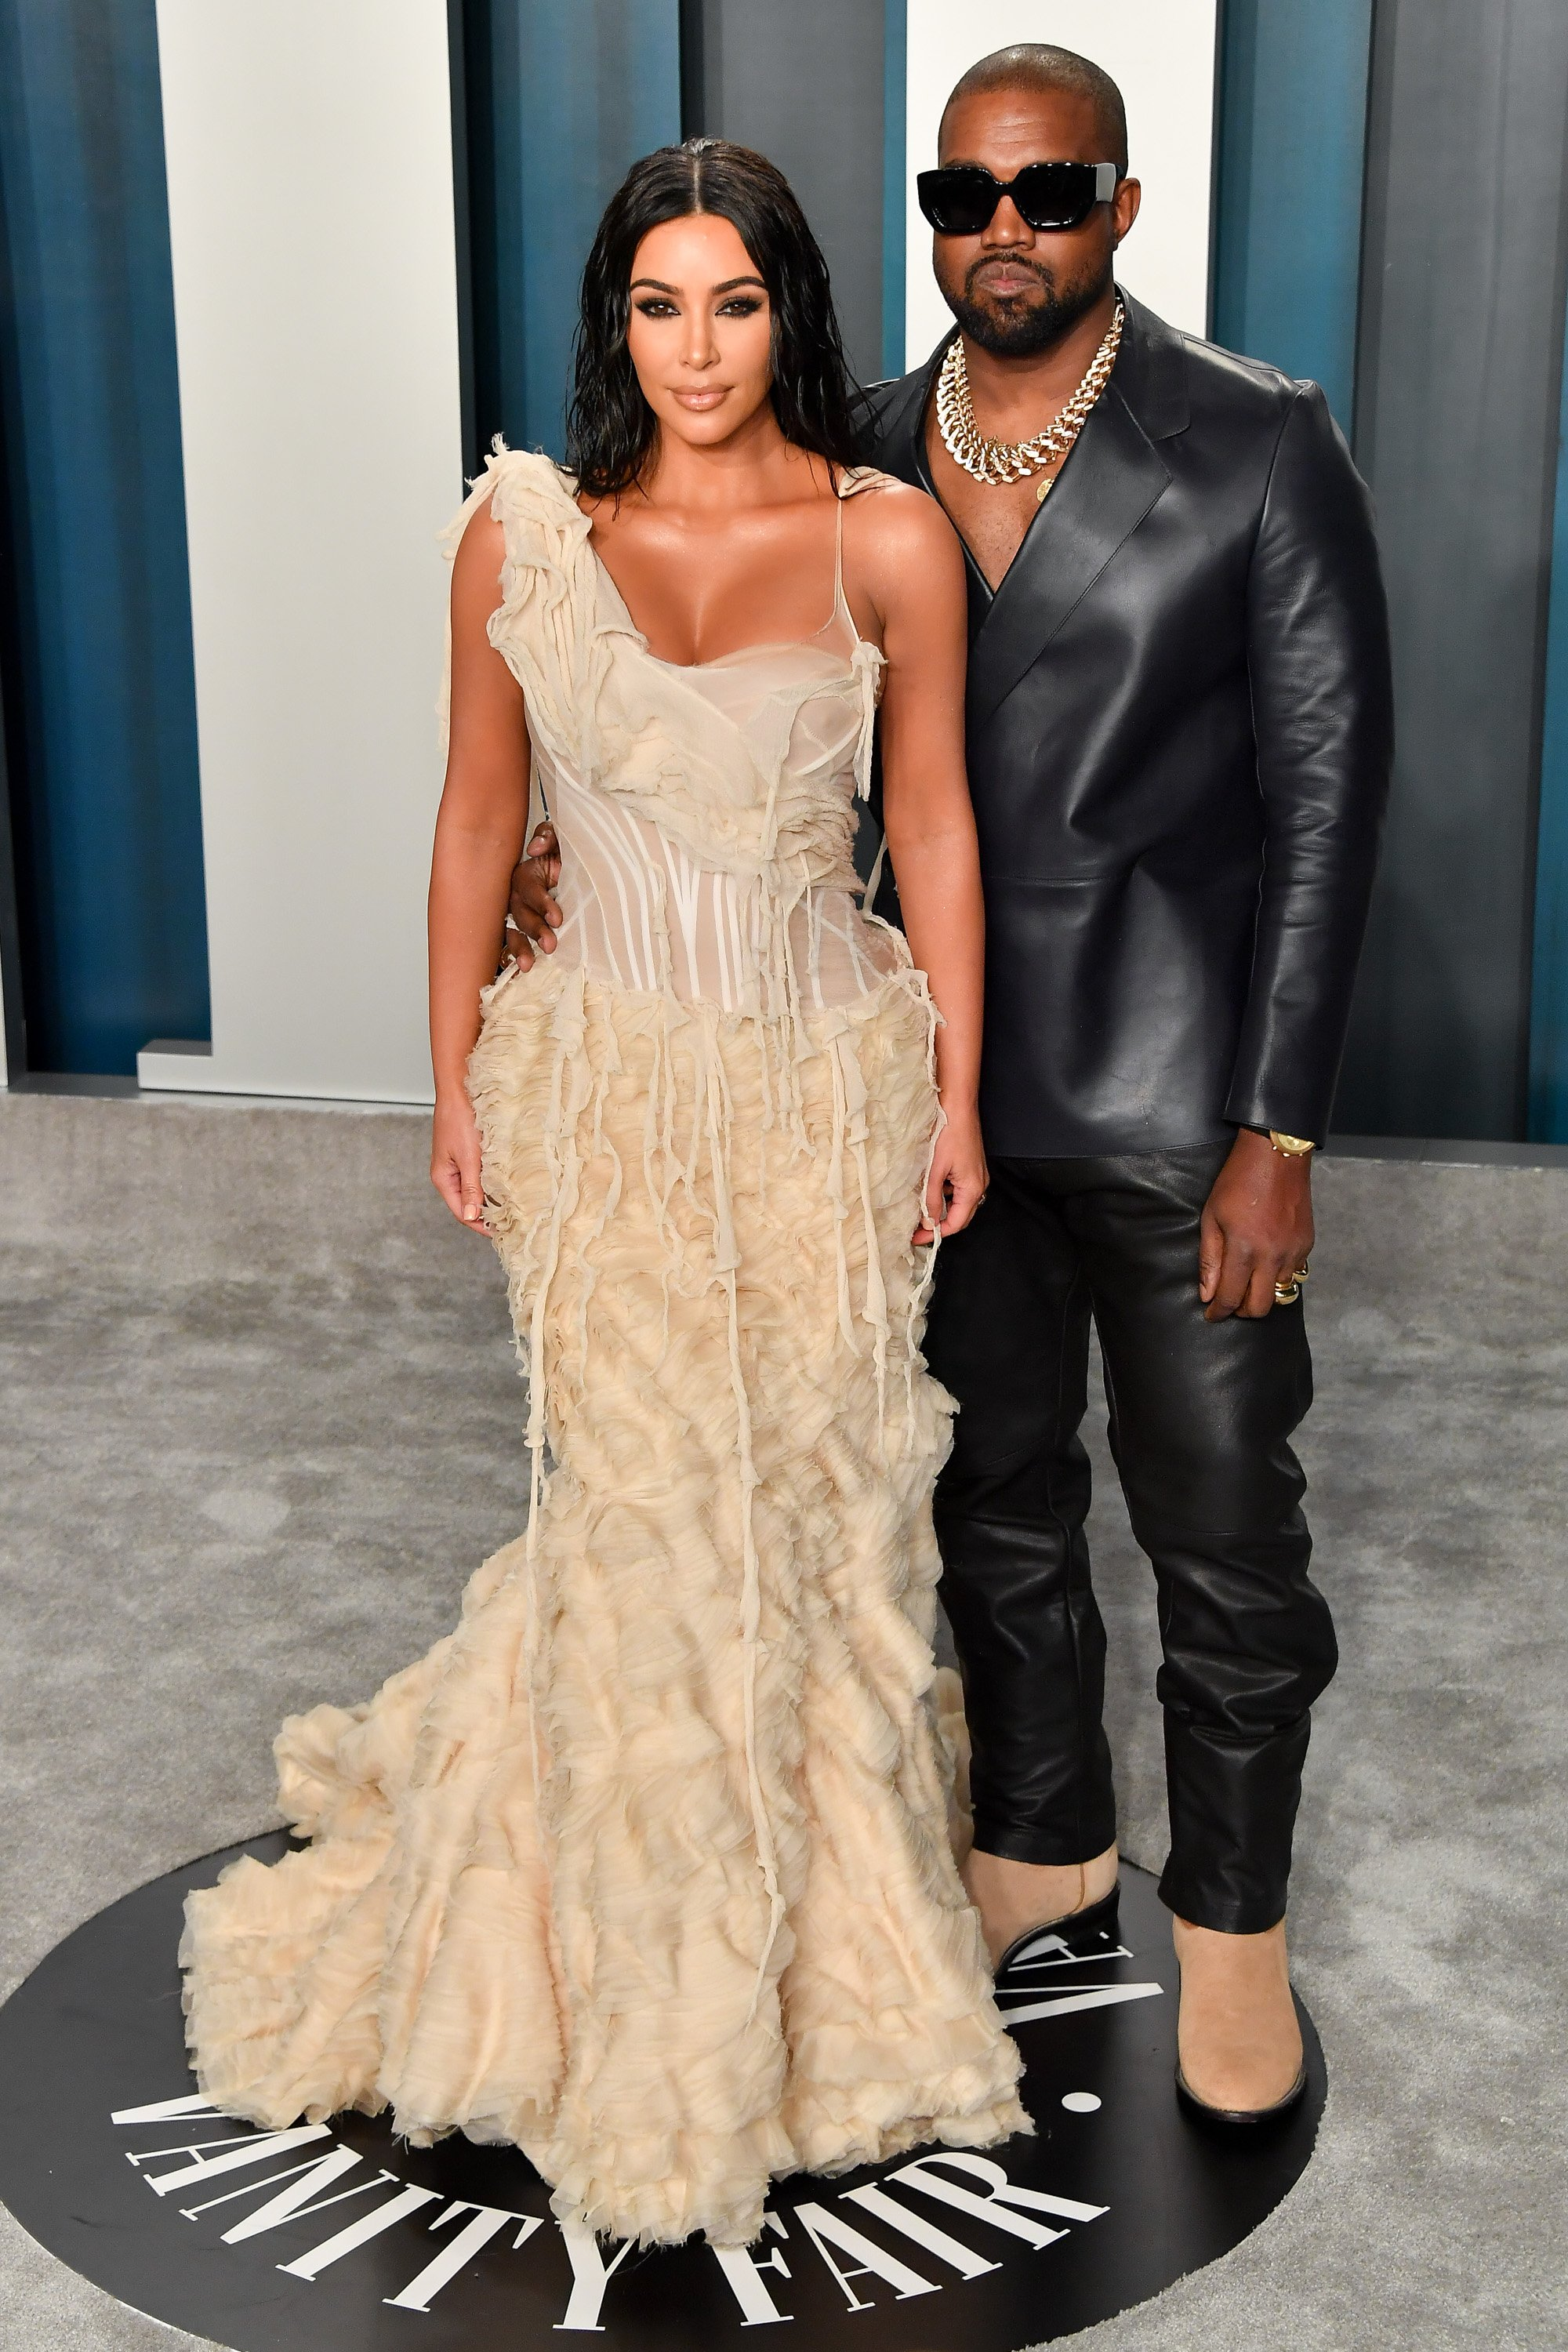 Kim Kardashian and Kanye West arrive at the 2020 Vanity Fair Oscar Party at Wallis Annenberg Center for the Performing Arts on February 09, 2020 in Beverly Hills, California | Photo: Getty Images